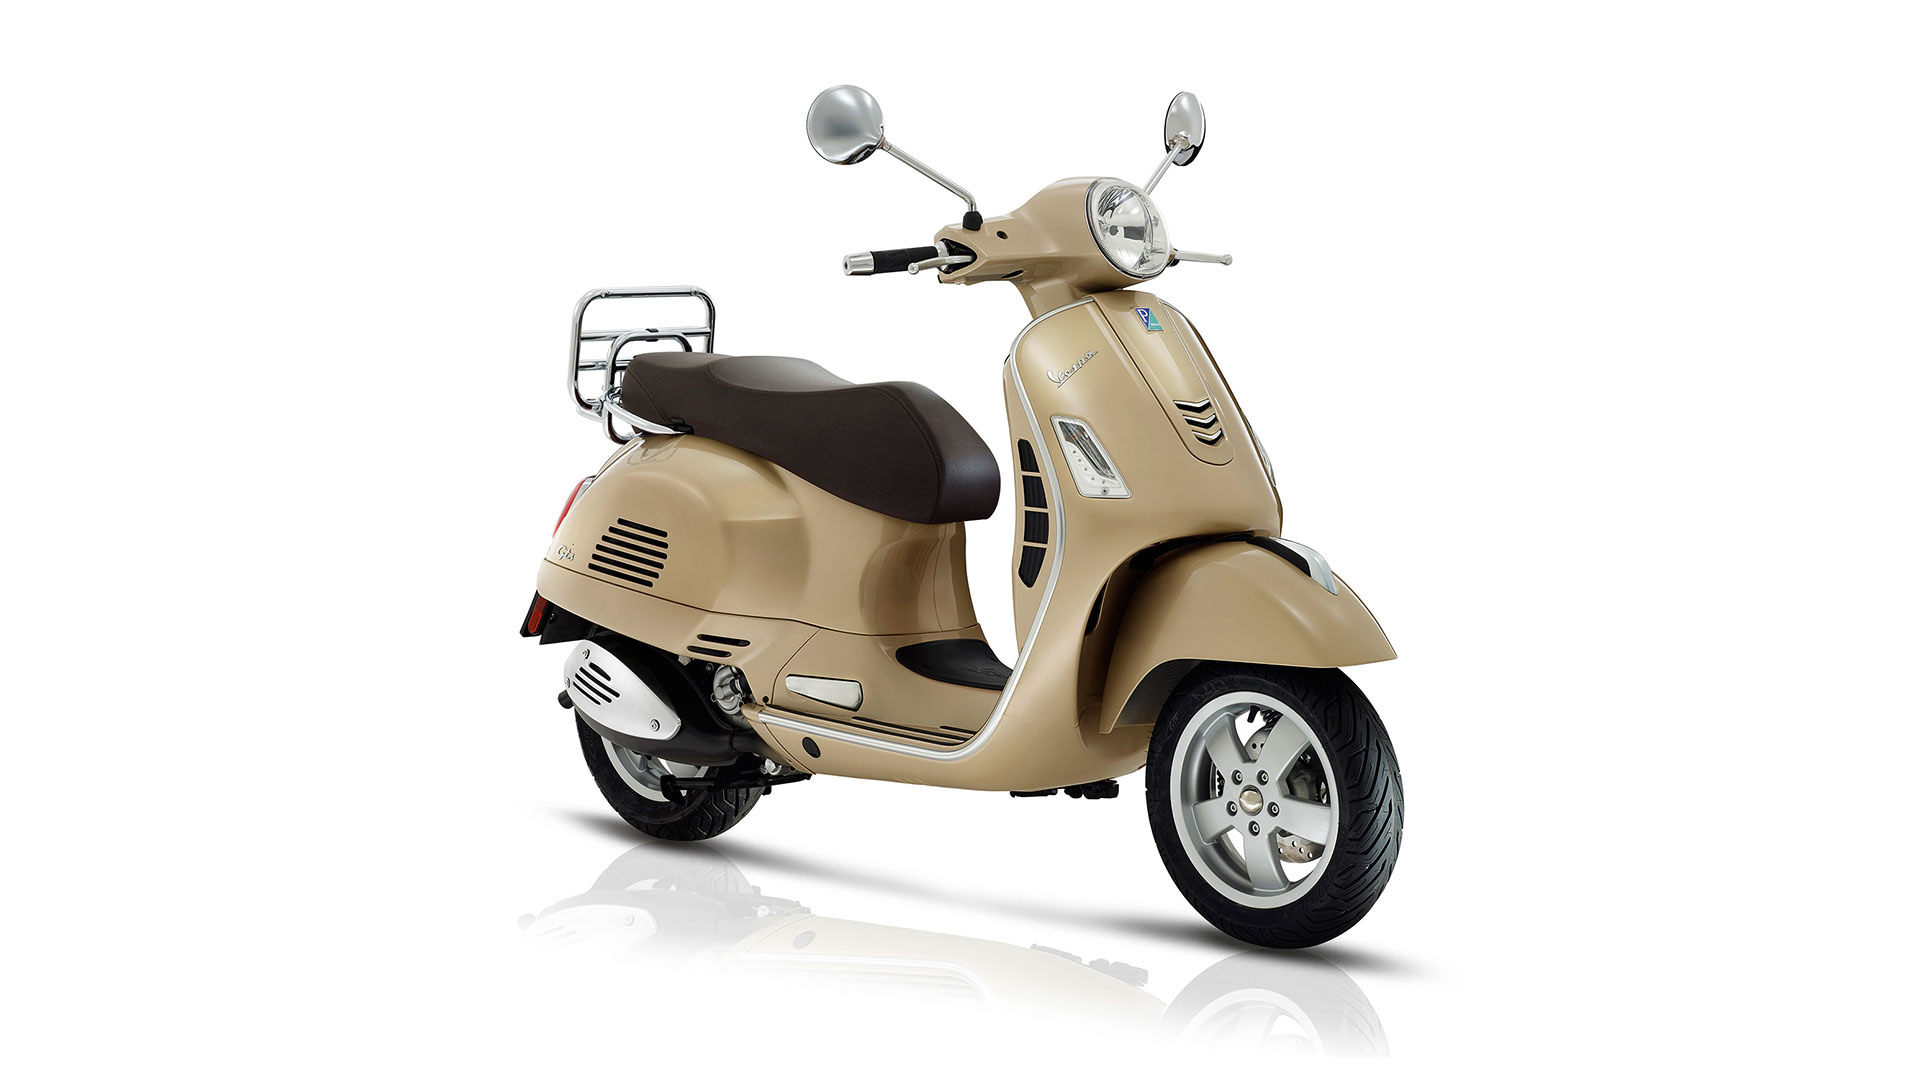 achat vespa gts classic 125 abs 125 cm3 neuf nice chez scoot center. Black Bedroom Furniture Sets. Home Design Ideas